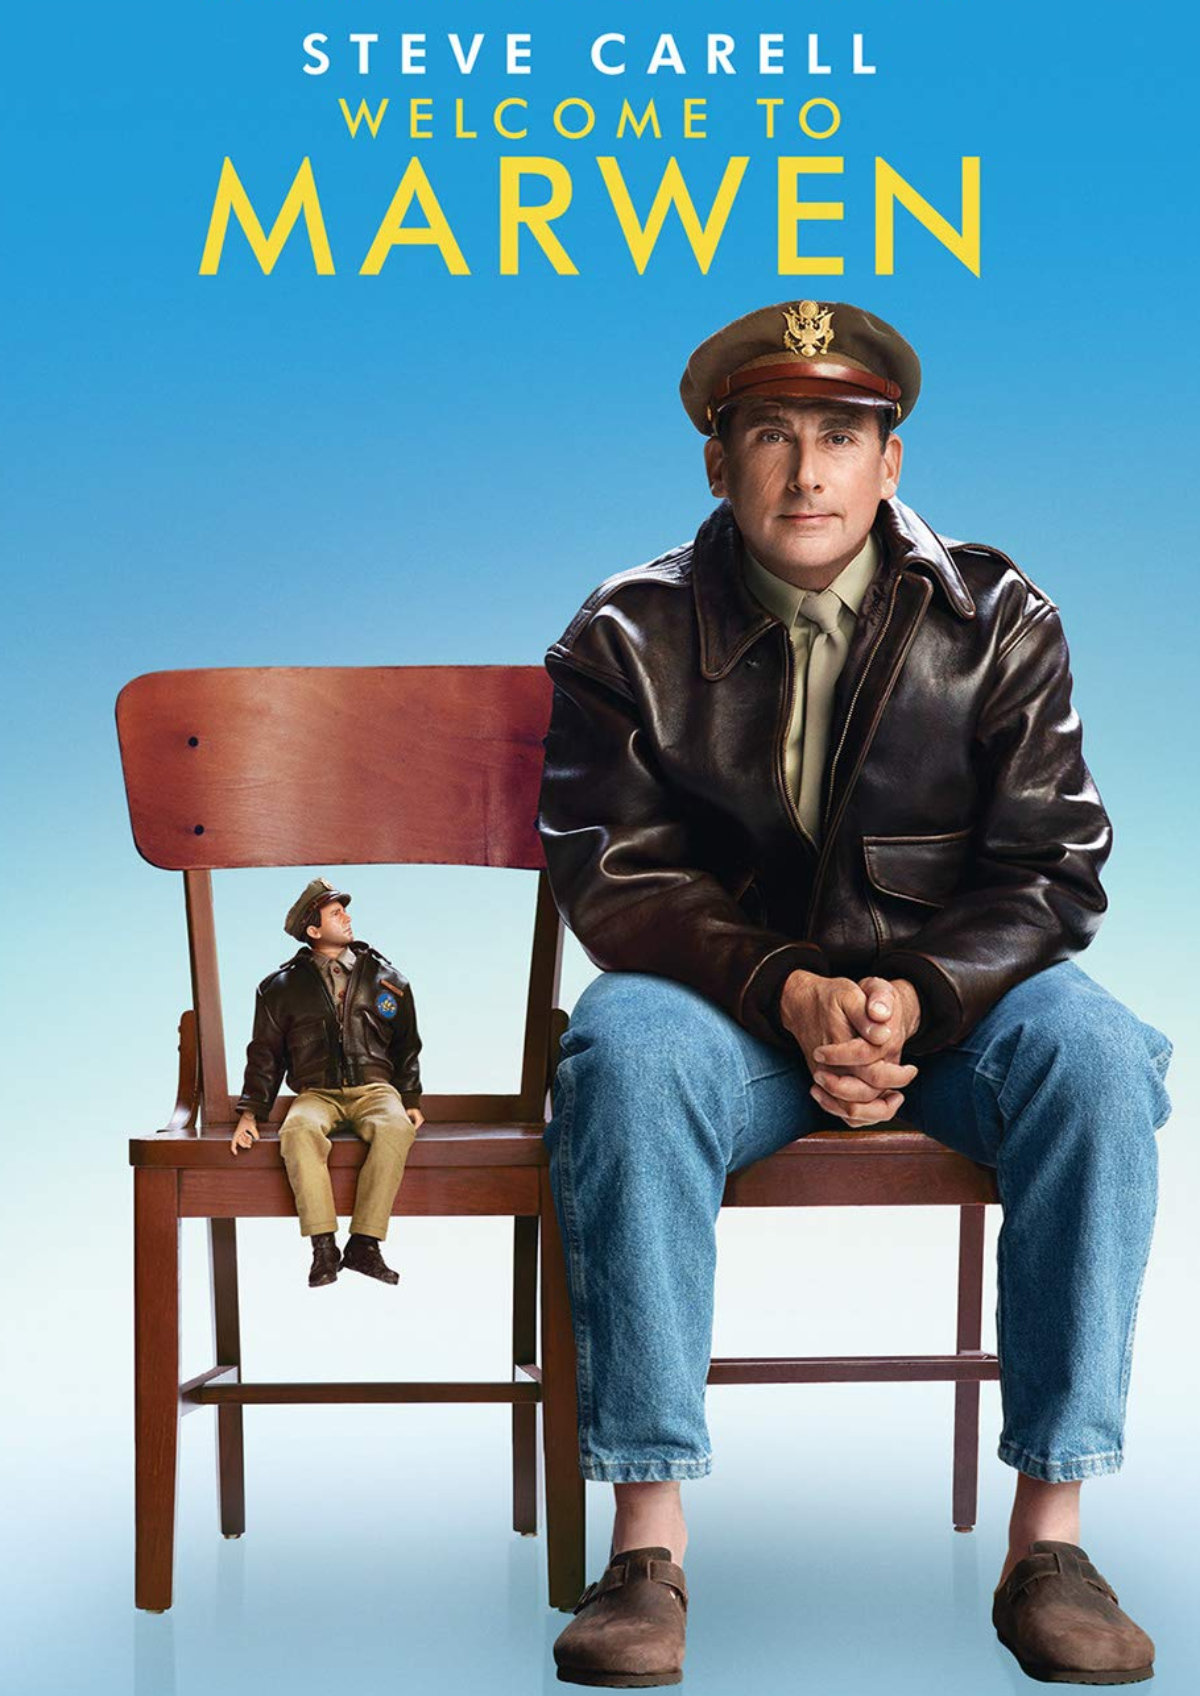 'Welcome To Marwen' movie poster